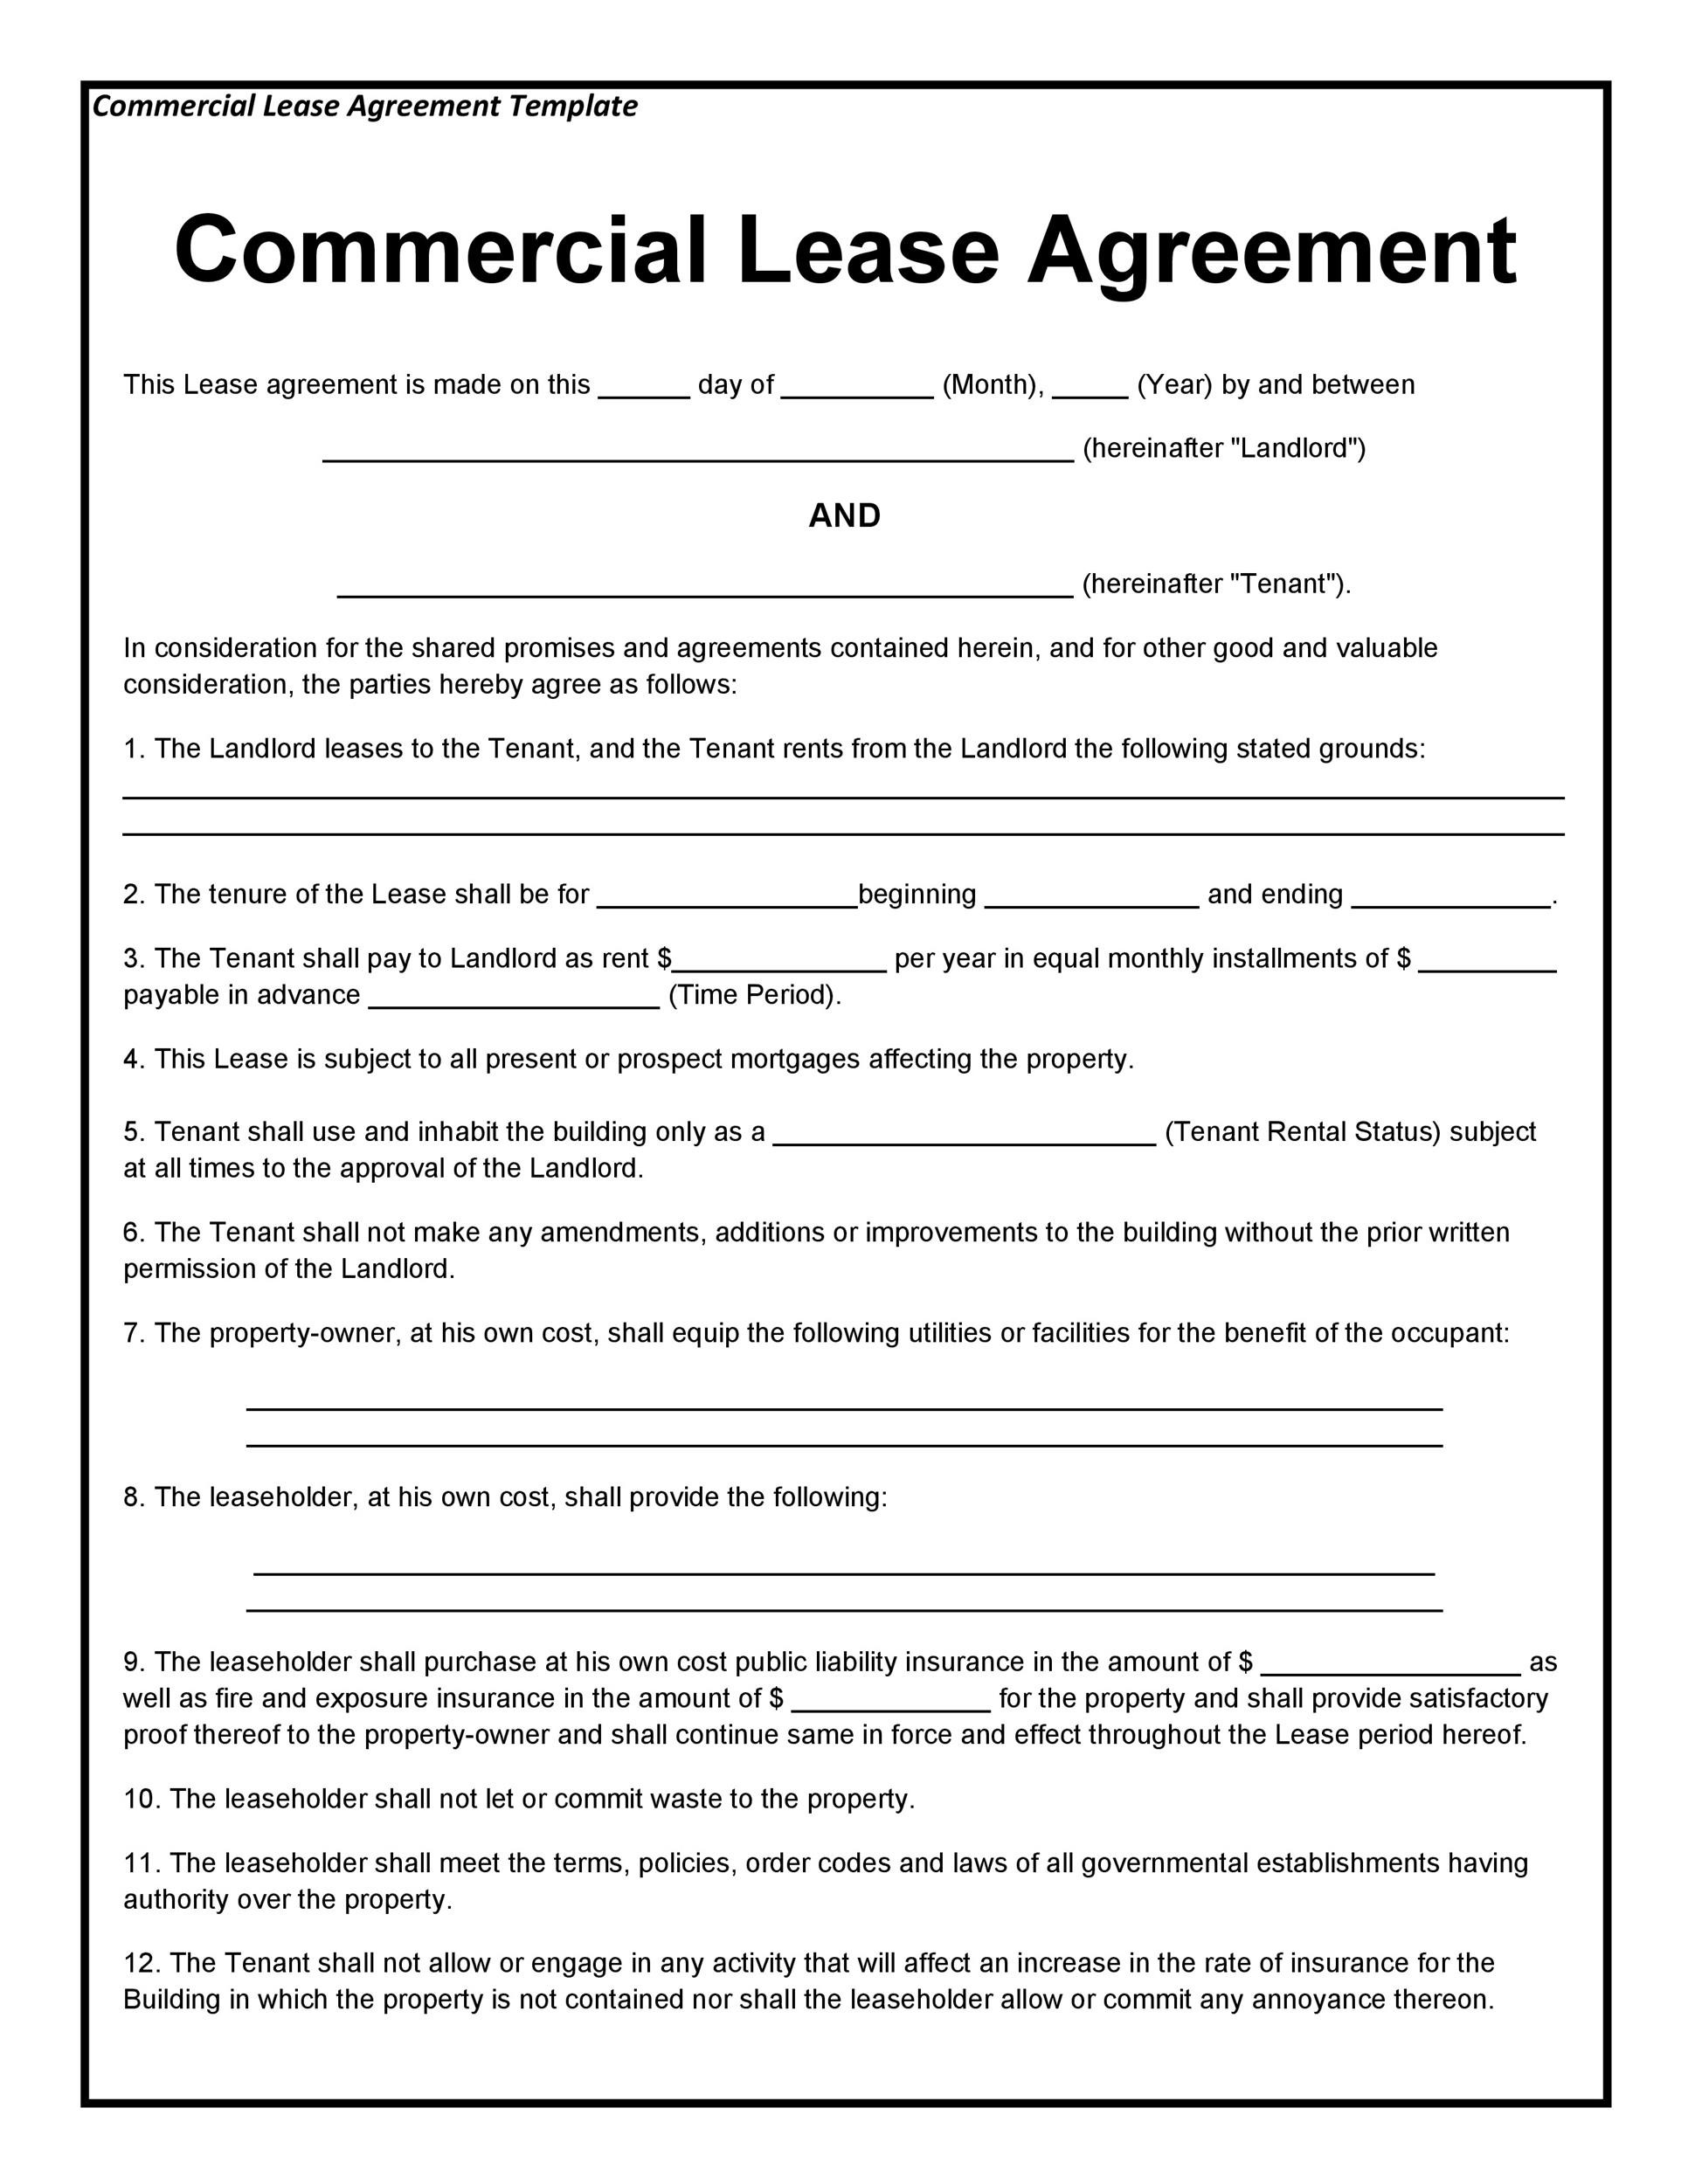 26 free commercial lease agreement templates template lab printable commercial lease agreement template 04 platinumwayz